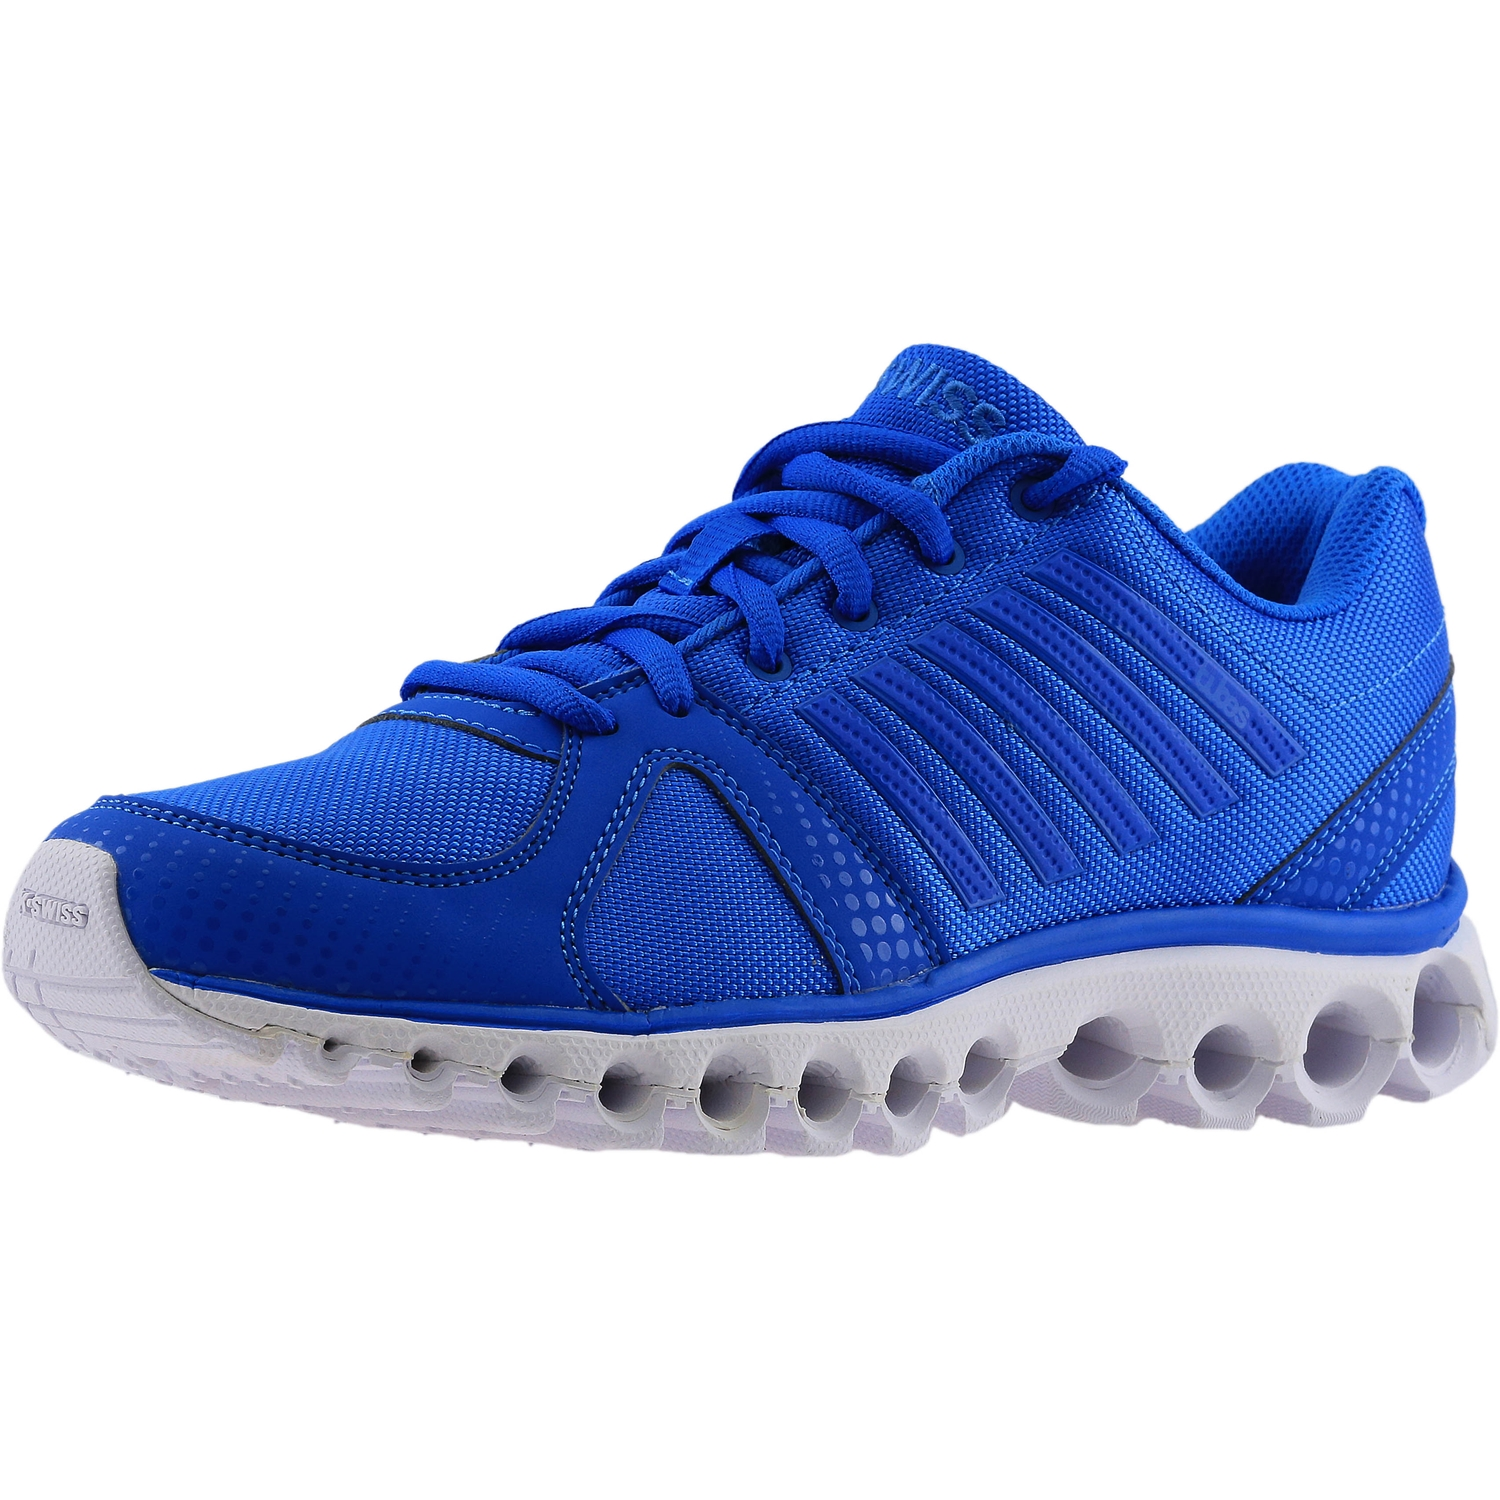 K-Swiss Women's X-160 Cmf Low French Blue / White Ankle-High Running Shoe - 6M